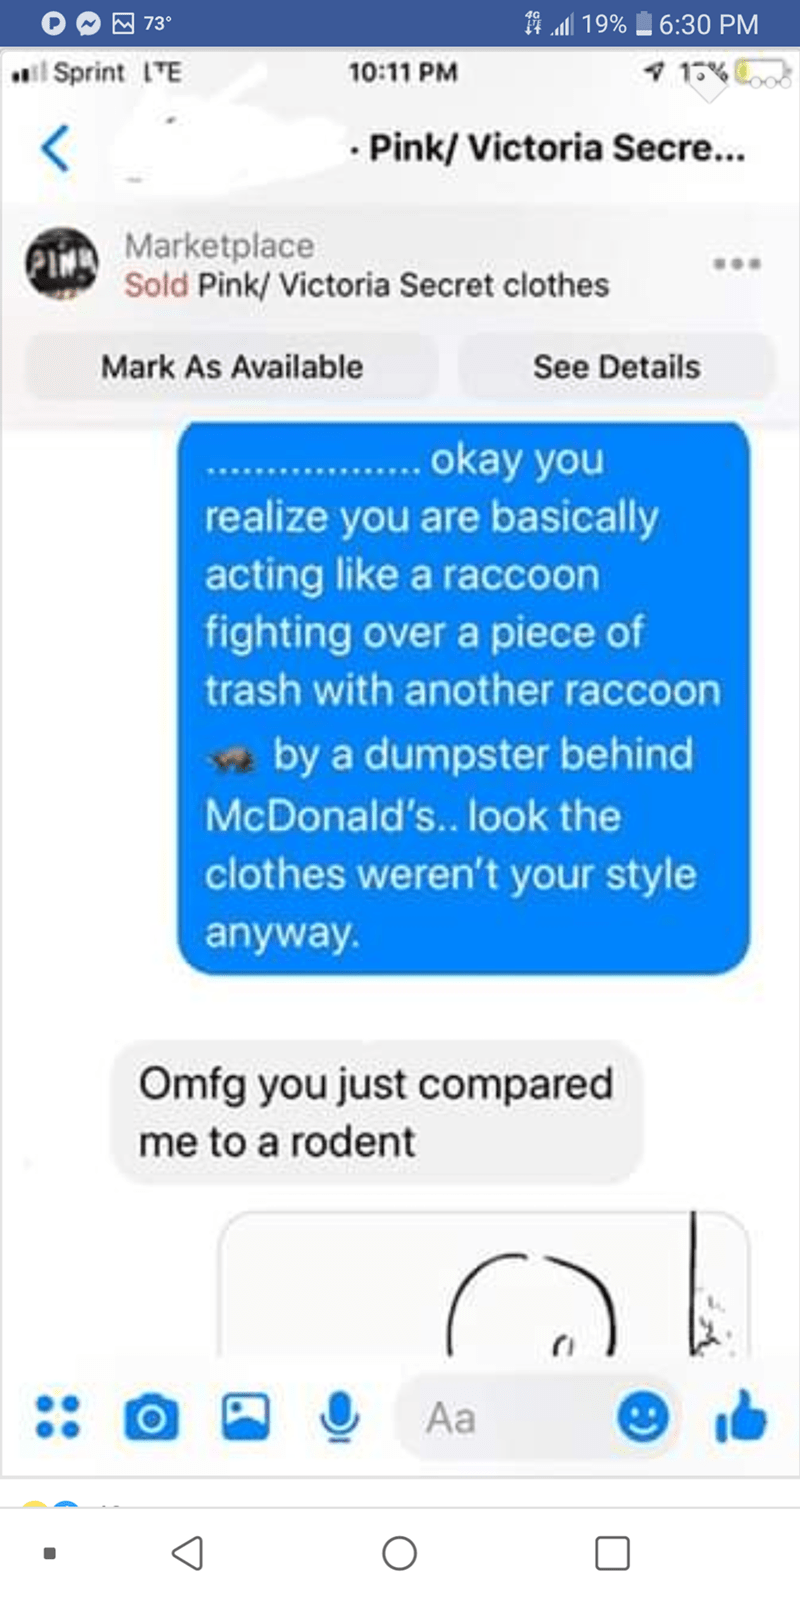 Text - 19% 6:30 PM 73° 1% 10:11 PM iSprint TE Pink/Victoria Secre... Marketplace Sold Pink/Victoria Secret clothes See Details Mark As Available .. a you realize you are basically acting like a raccoon fighting over a piece of trash with another raccoon by a dumpster behind McDonald's.. look the clothes weren't your style anyway. Omfg you just compared me to a rodent Aa